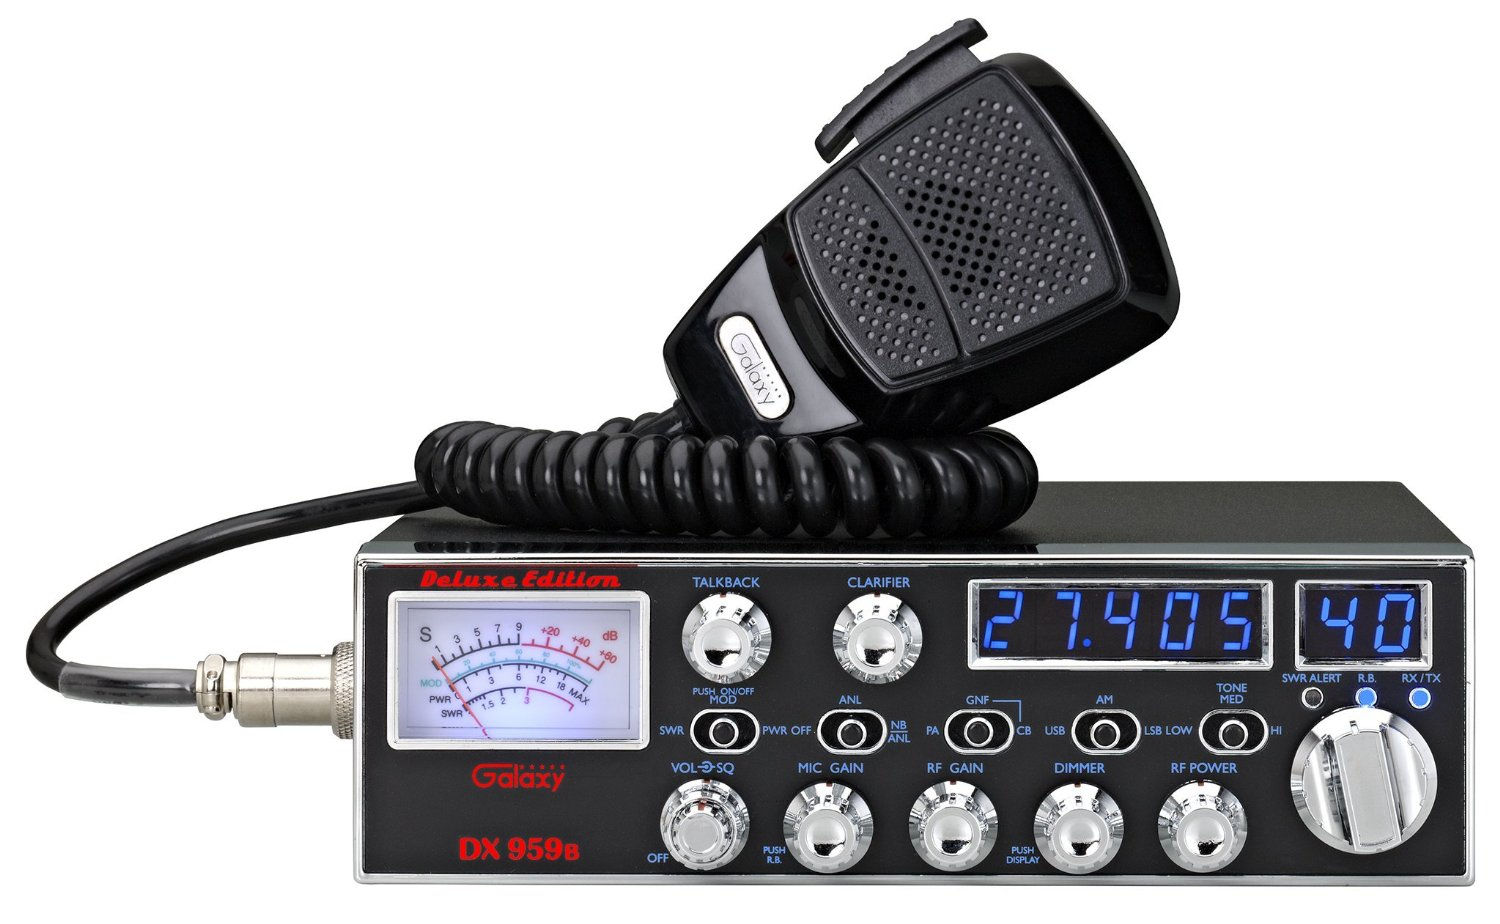 40 Channel Cb Frequency Chart : Galaxy dx b transceiver with starlite face plate